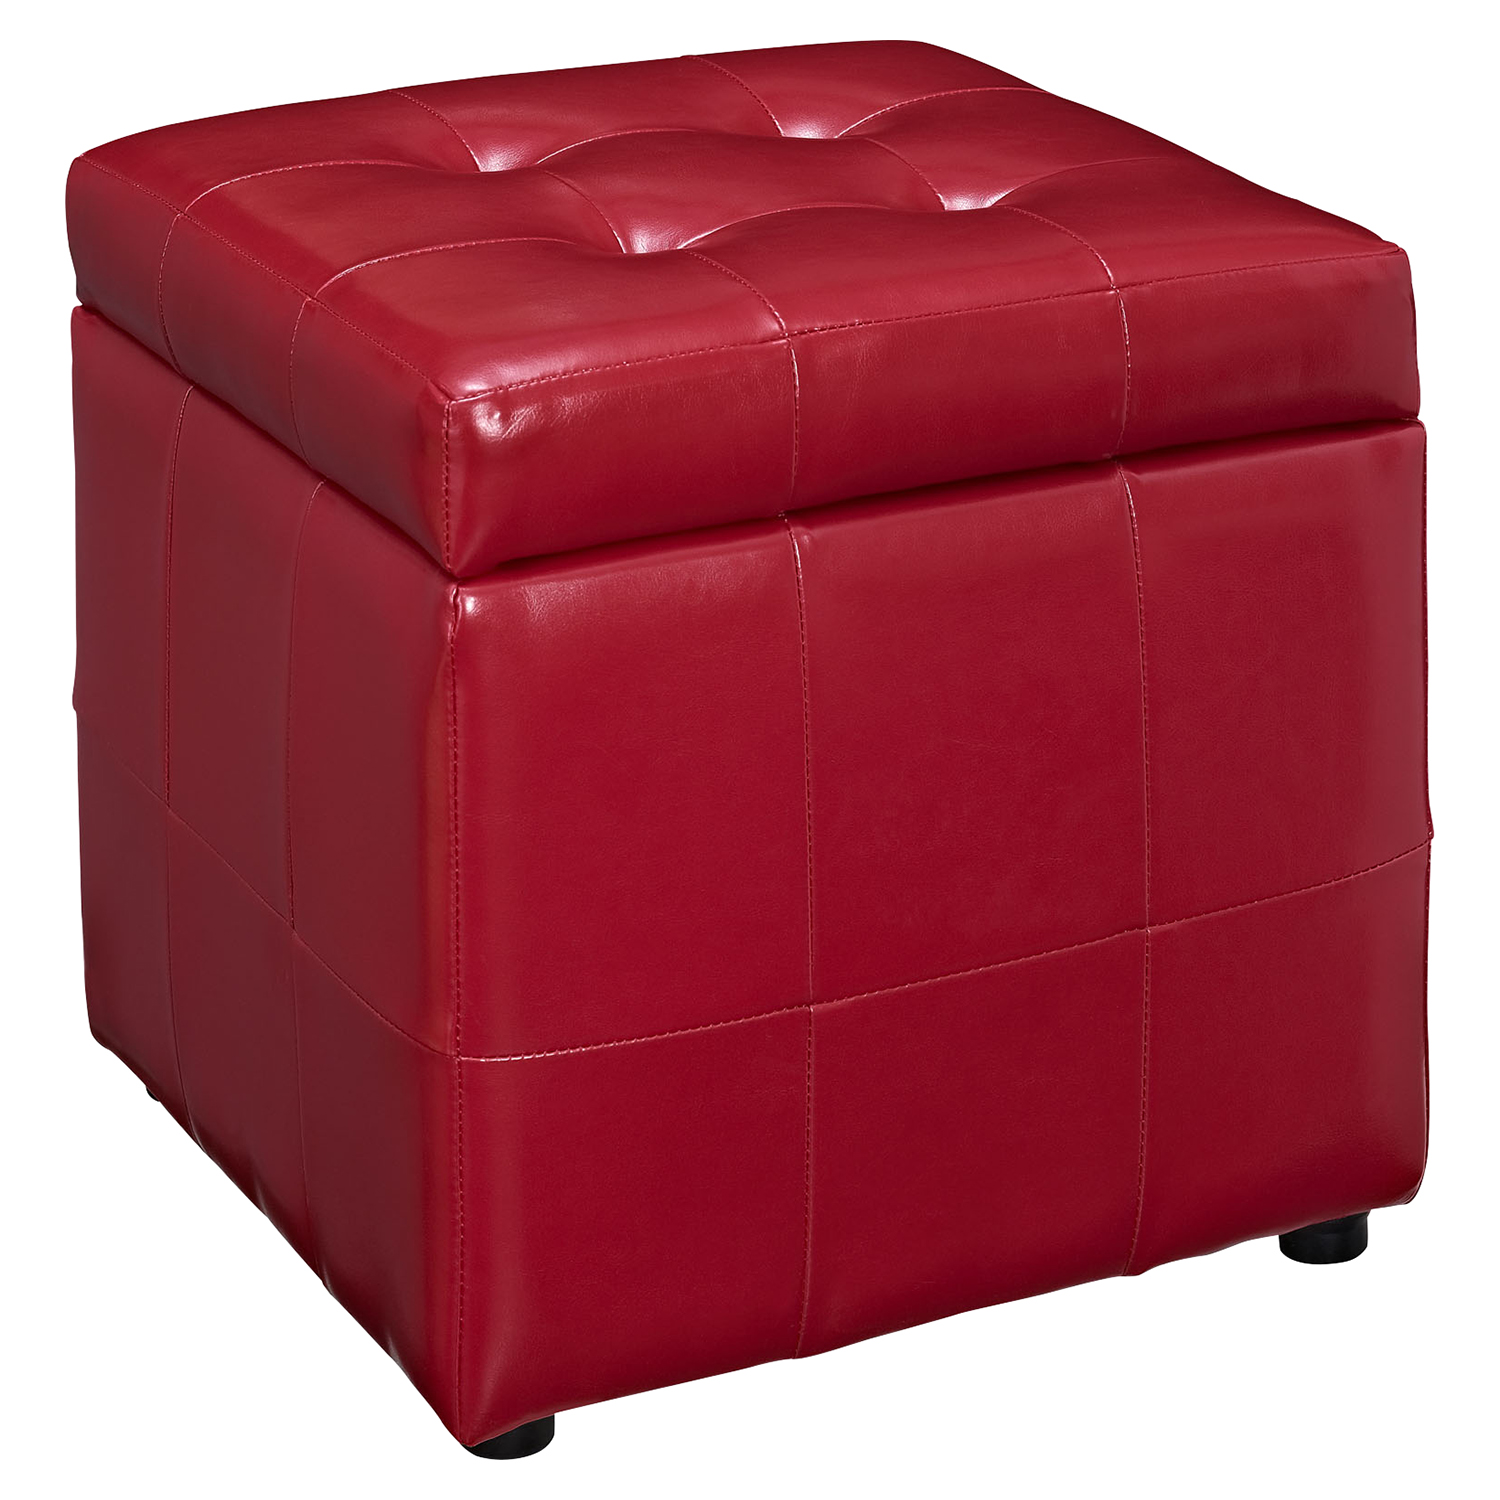 Volt Storage Tufted Ottoman - Red - EEI-1044-RED